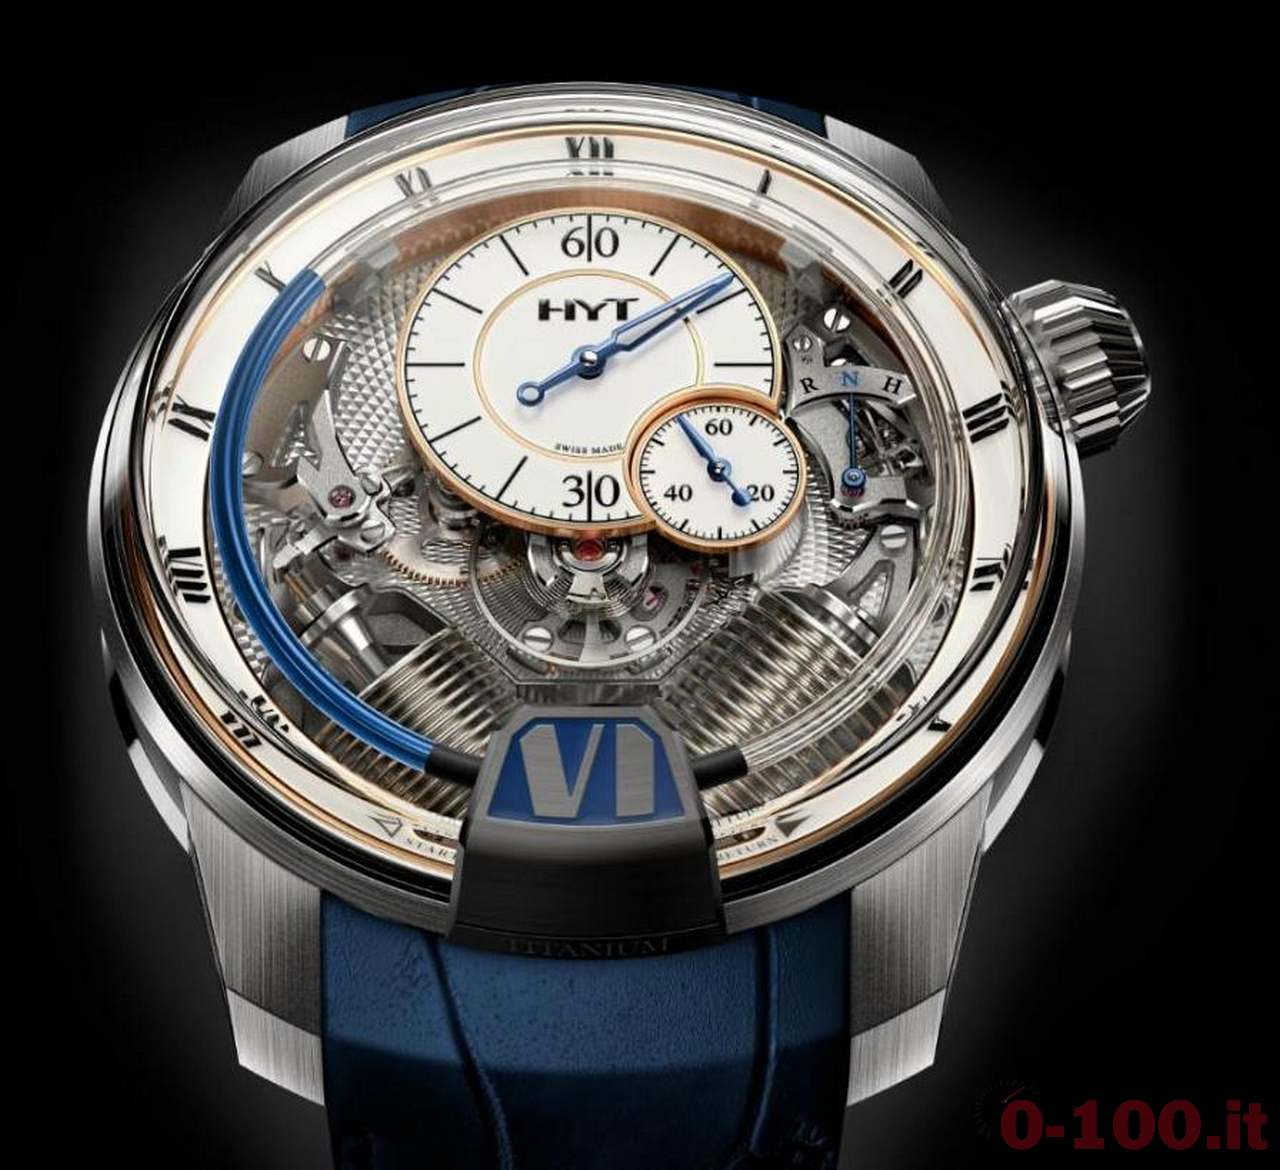 anteprima-sihh-2016-hyt-h2-tradition-limited-edition-ref-248-tw-10-bf-ab-prezzo-price_0-100_7